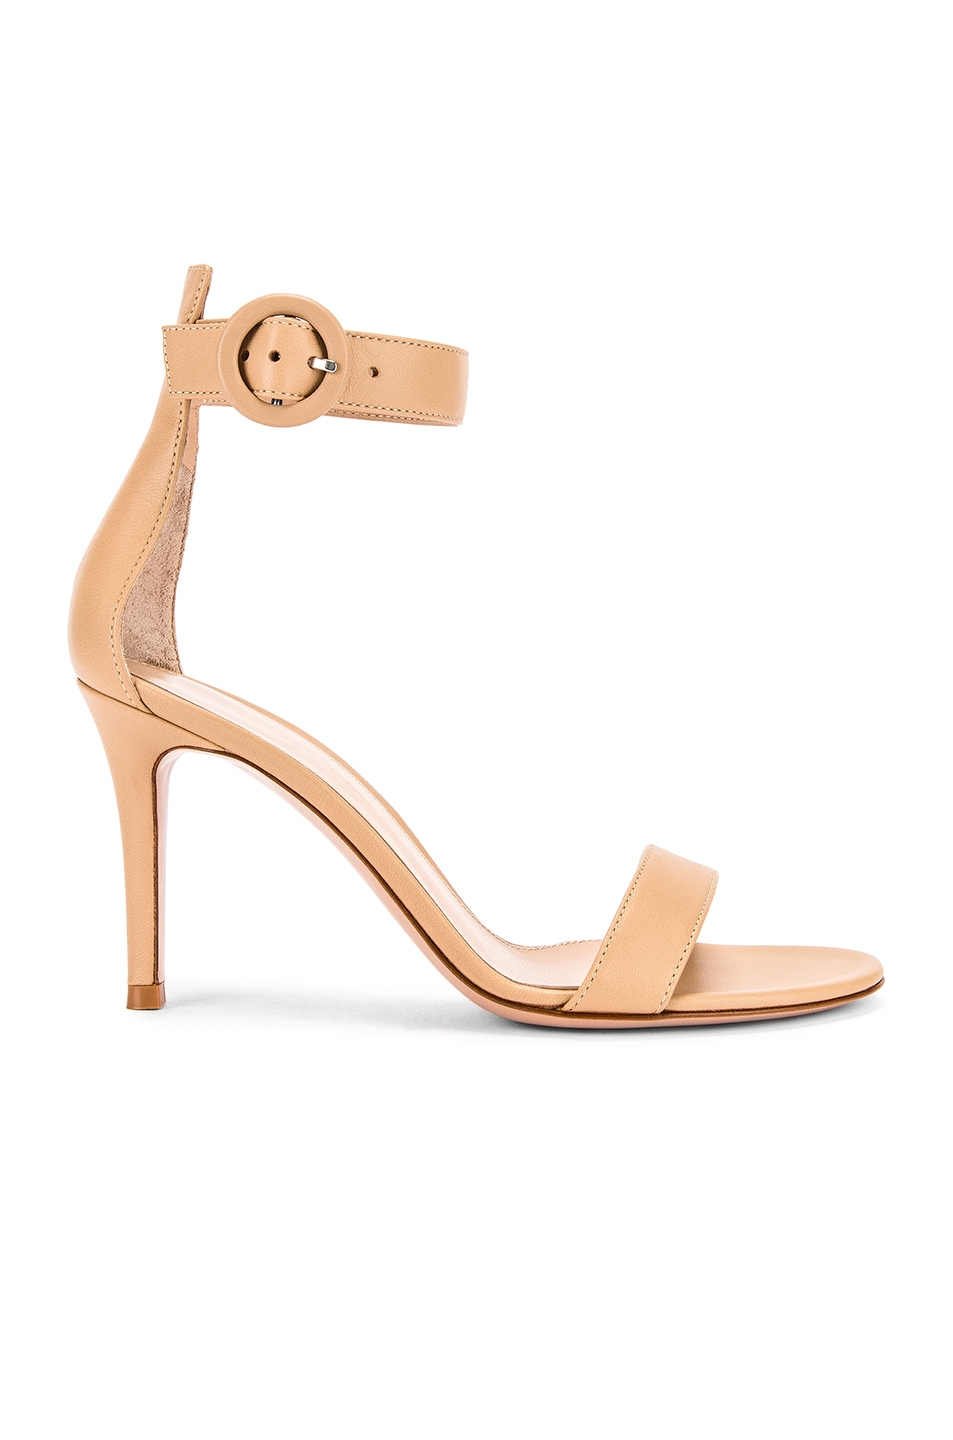 Image 1 of Gianvito Rossi Leather Portofino Heels in Nude